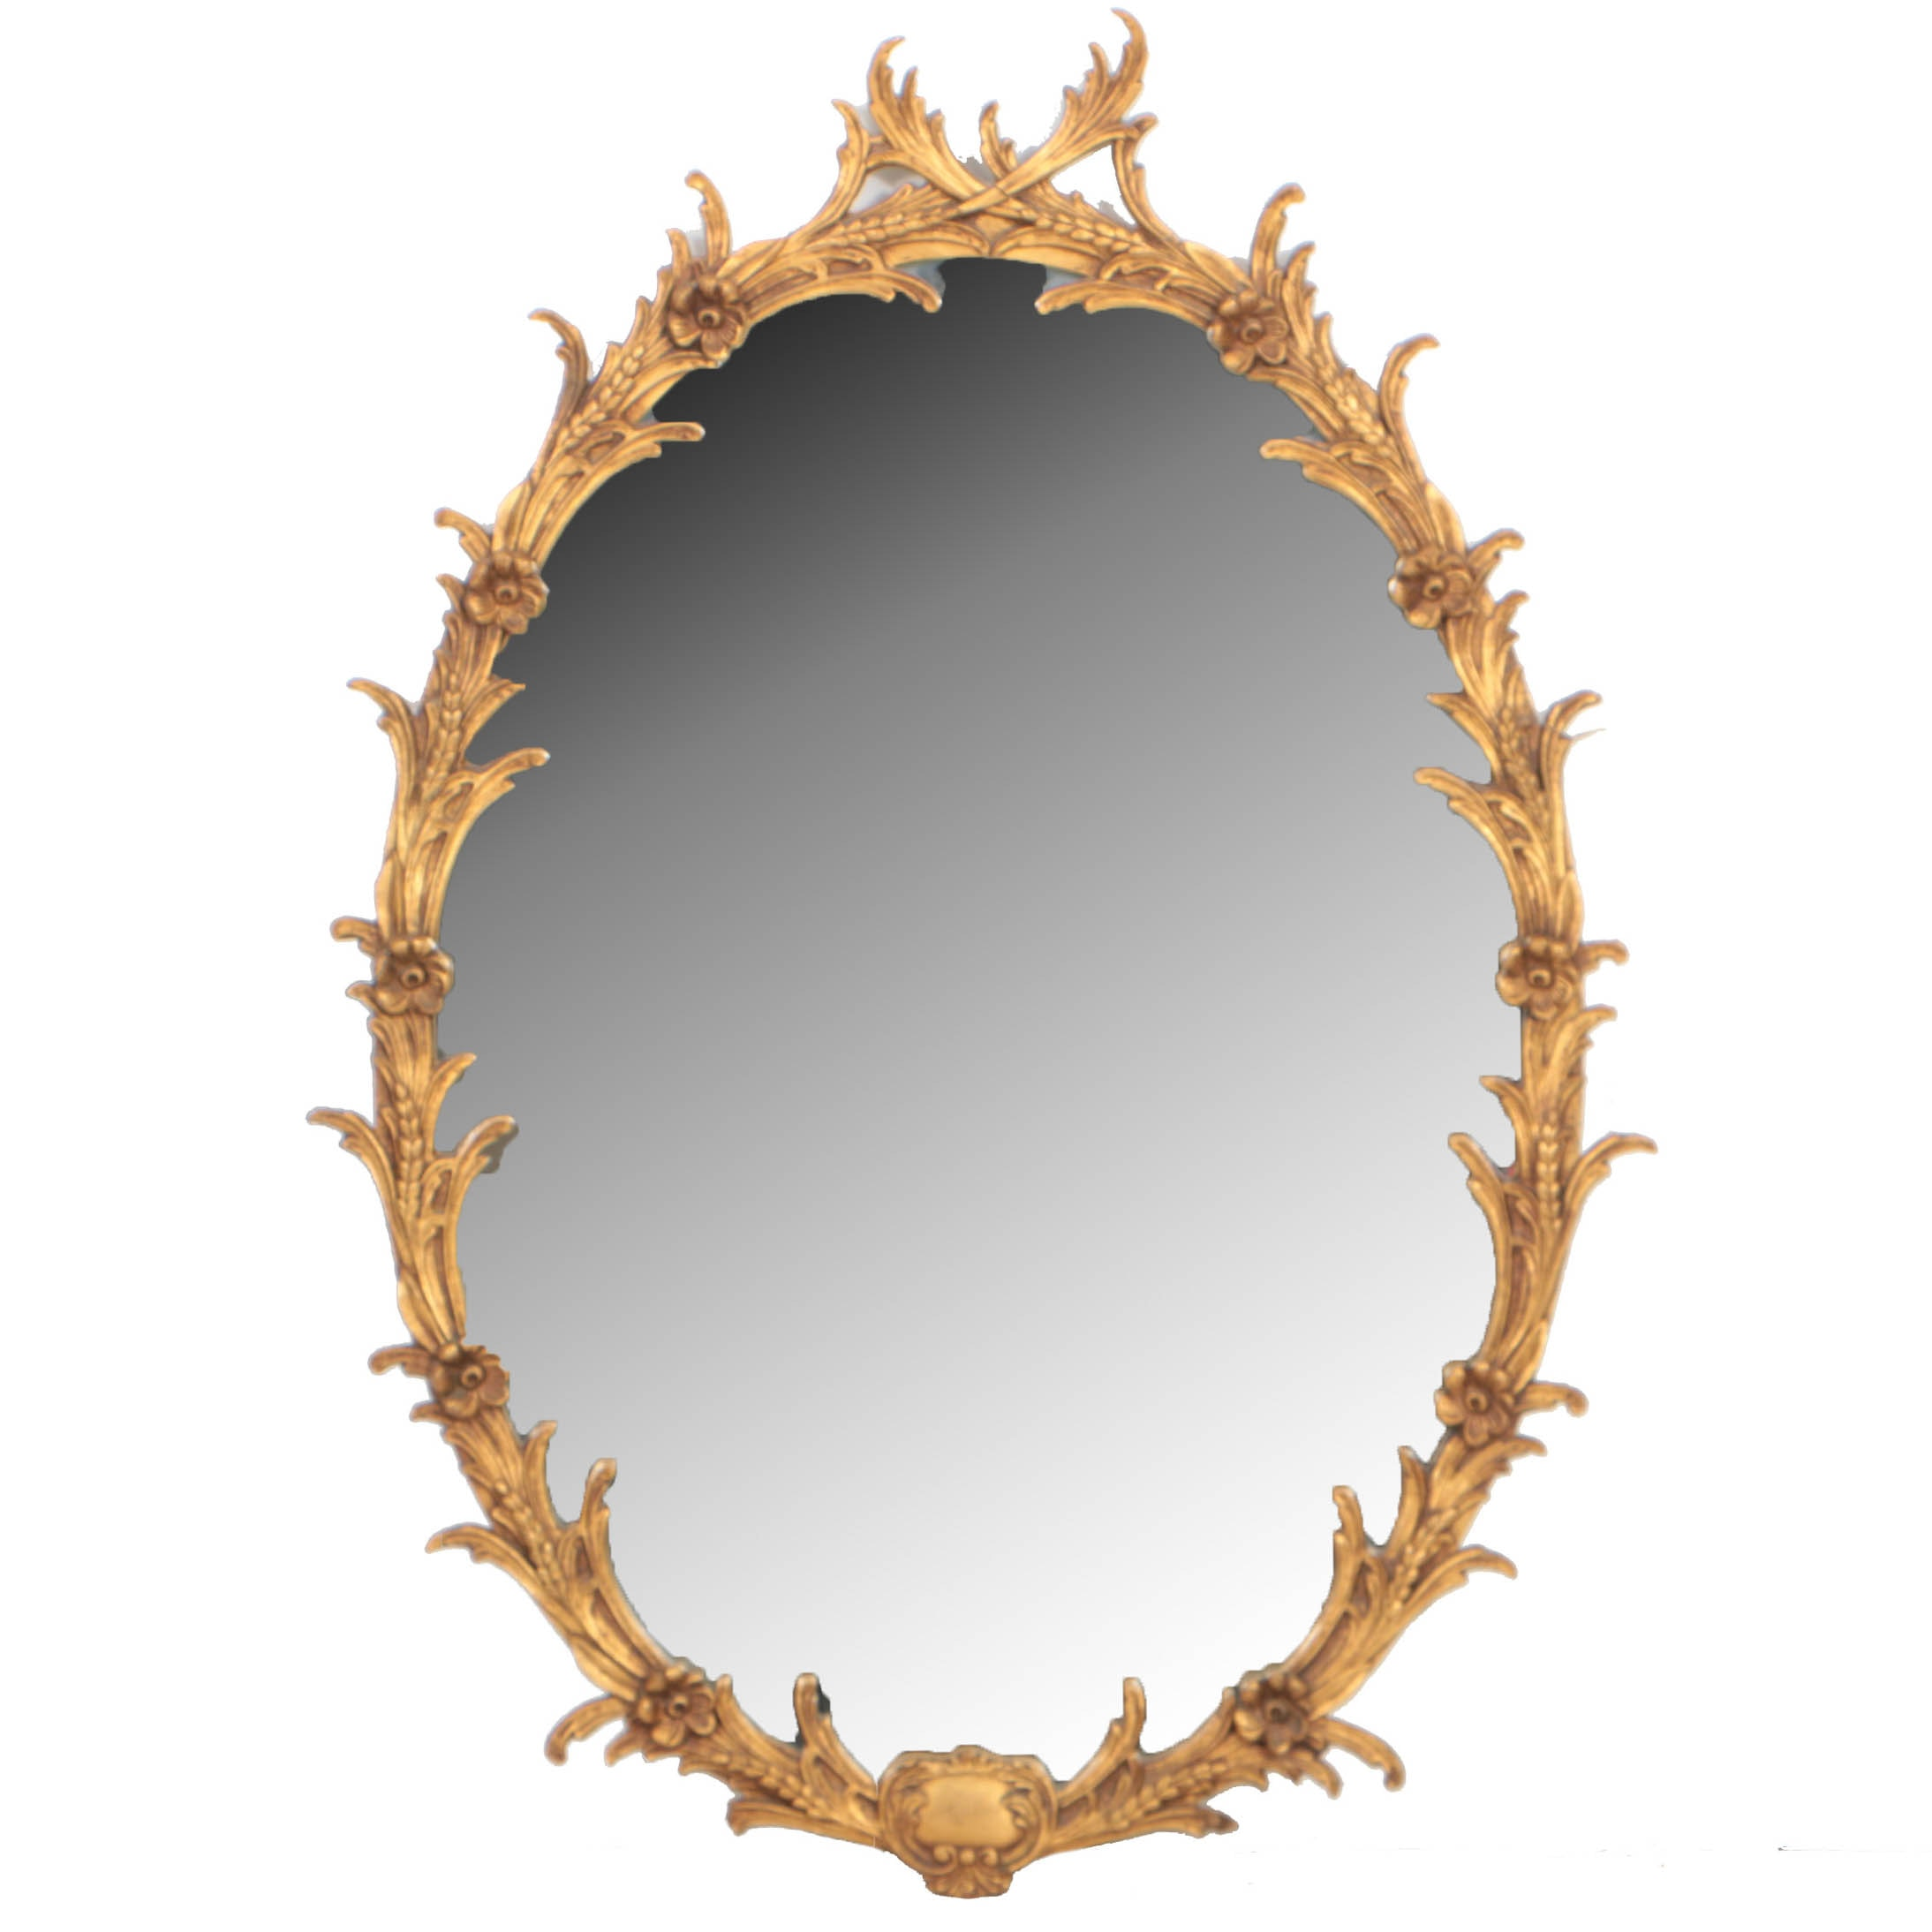 George III Style Floral-Carved Giltwood Mirror, 20th Century